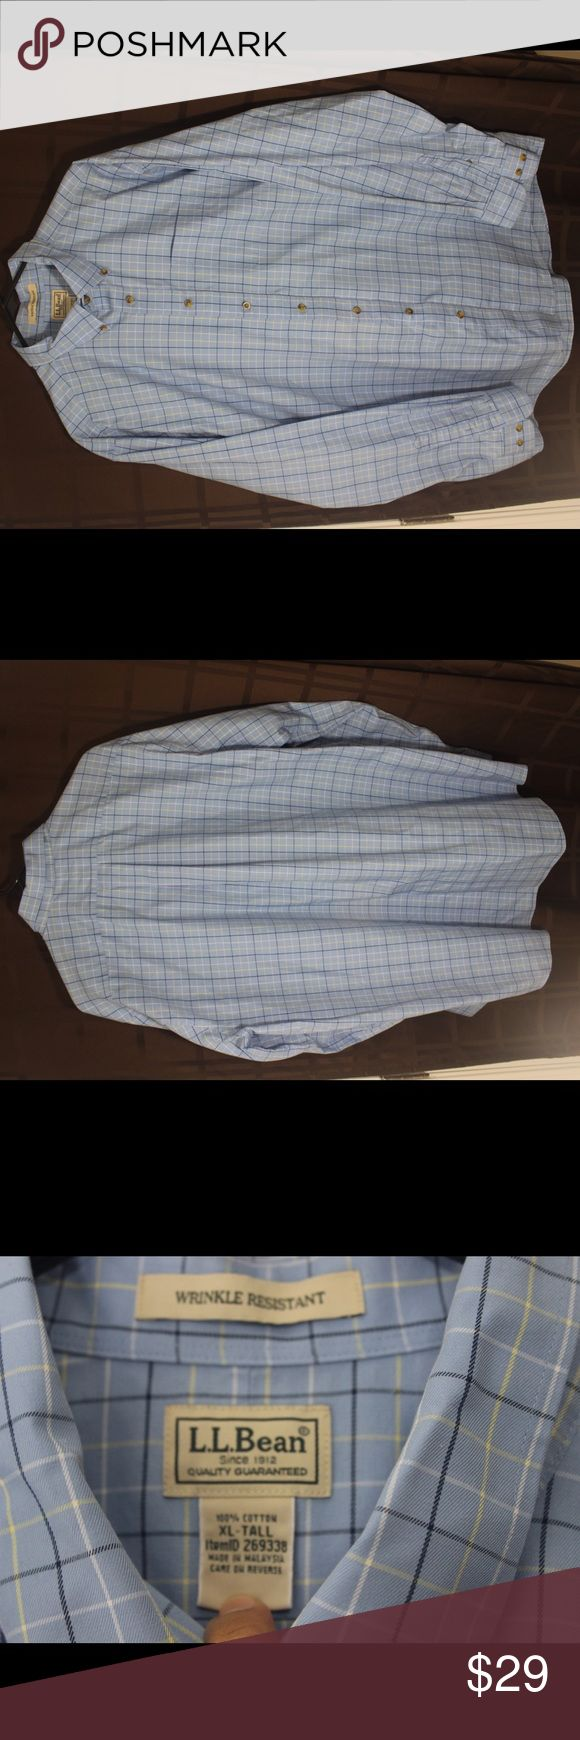 L.L.Bean wrinkle Resistance blue check XLT Shirt You Are Buying L.L.Bean wrinkle Resistance blue check XLT Shirt  It is in great pre-own Condition.  Fast shipping in the USA via USPS.  FEEDBACK: we strive to earn positive 5 star feedback for all items. And we will leave the same for all good buyers.  If you feel we deserve anything less please send us a message before leaving anything less or opening a case and we will fix the issue within 24 hours.   Thank you!!! L.L. Bean Shirts Dress…